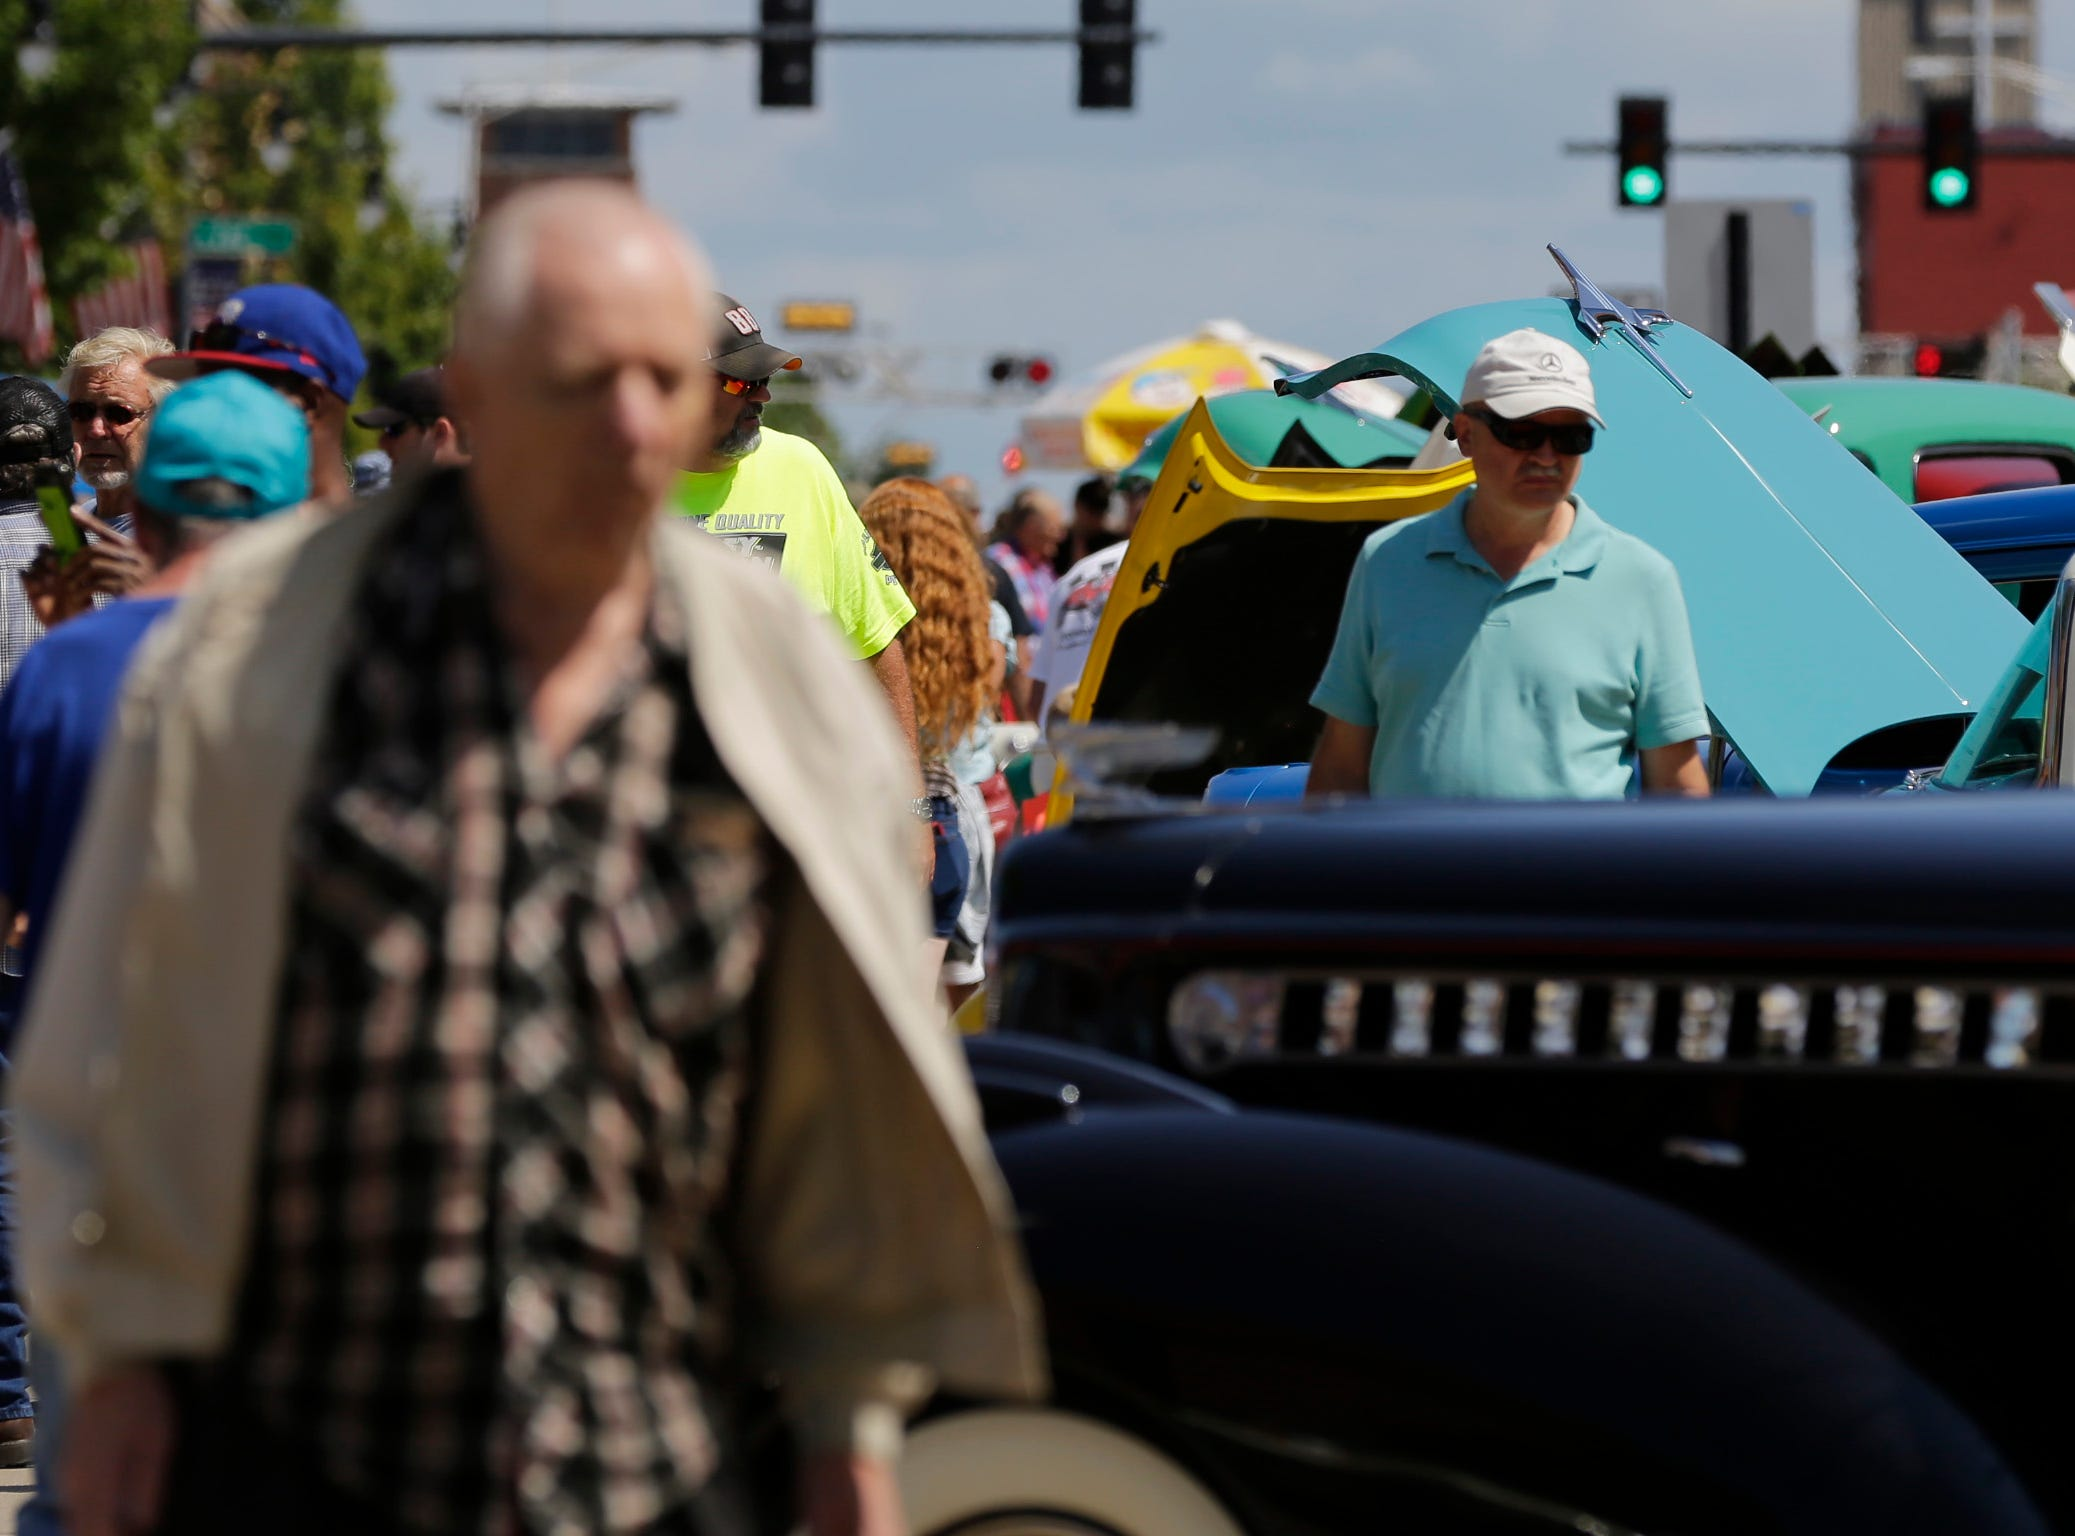 Crowds move through the car show on Central Avenue at Hub City Days in downtown Marshfield Saturday, July 28, 2018.